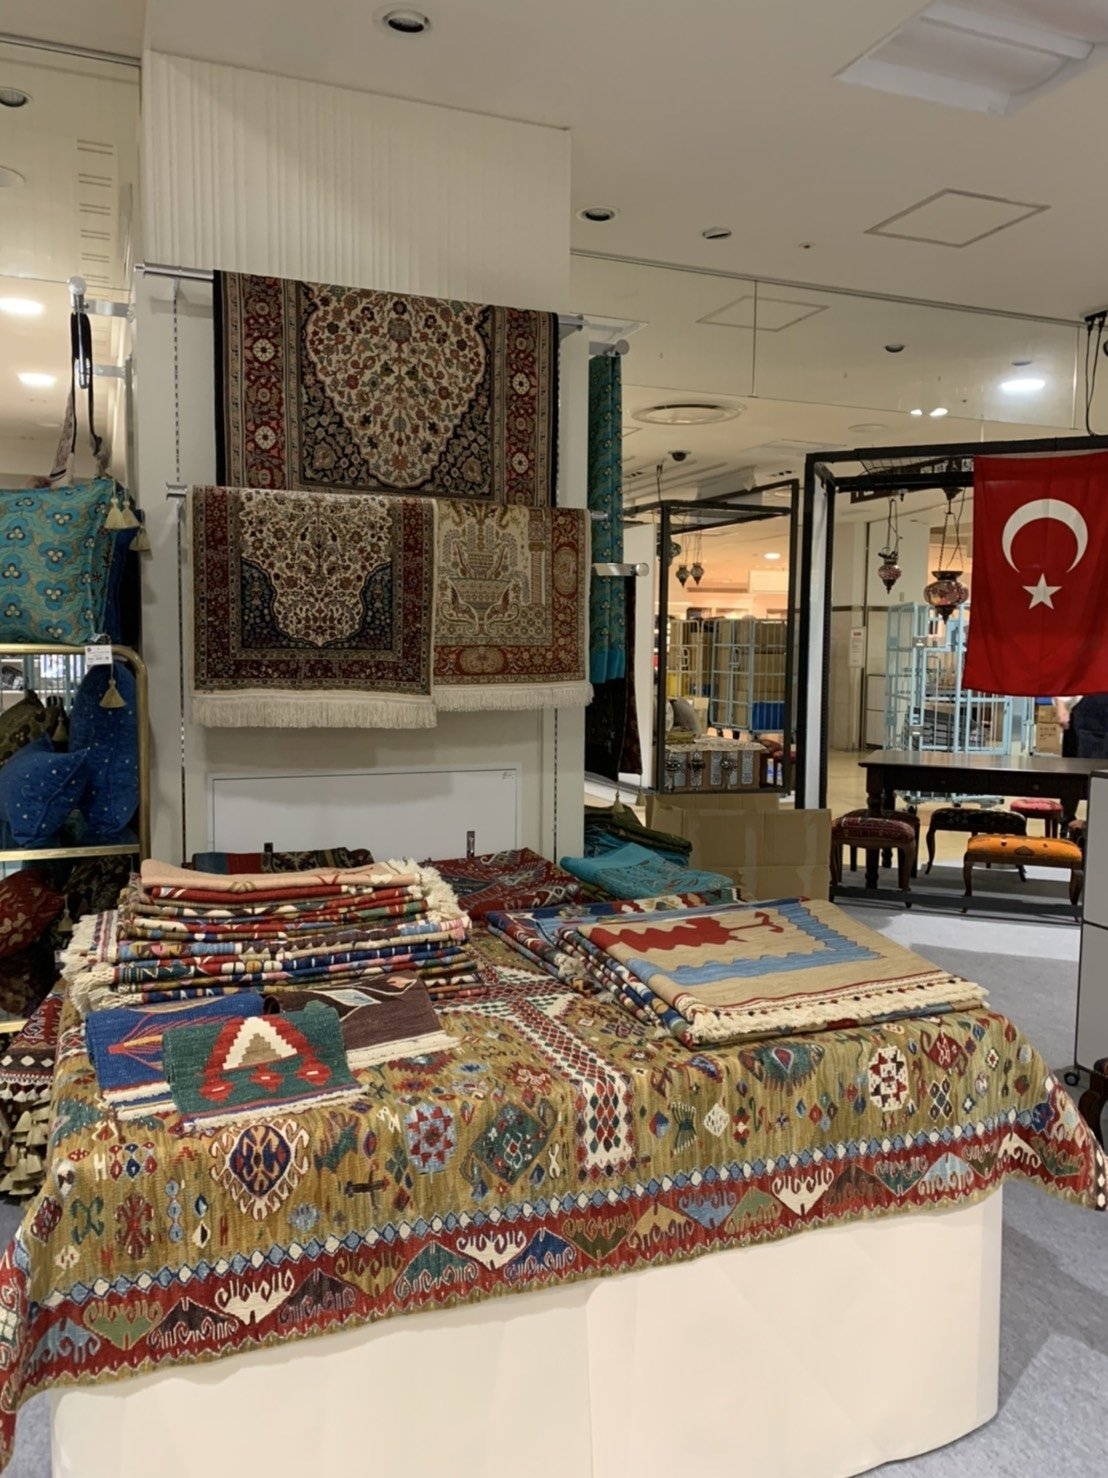 Woven Turkish rugs are seen at the exhibition in Nagoya, Japan, Nov. 12, 2020. (AA Photo)